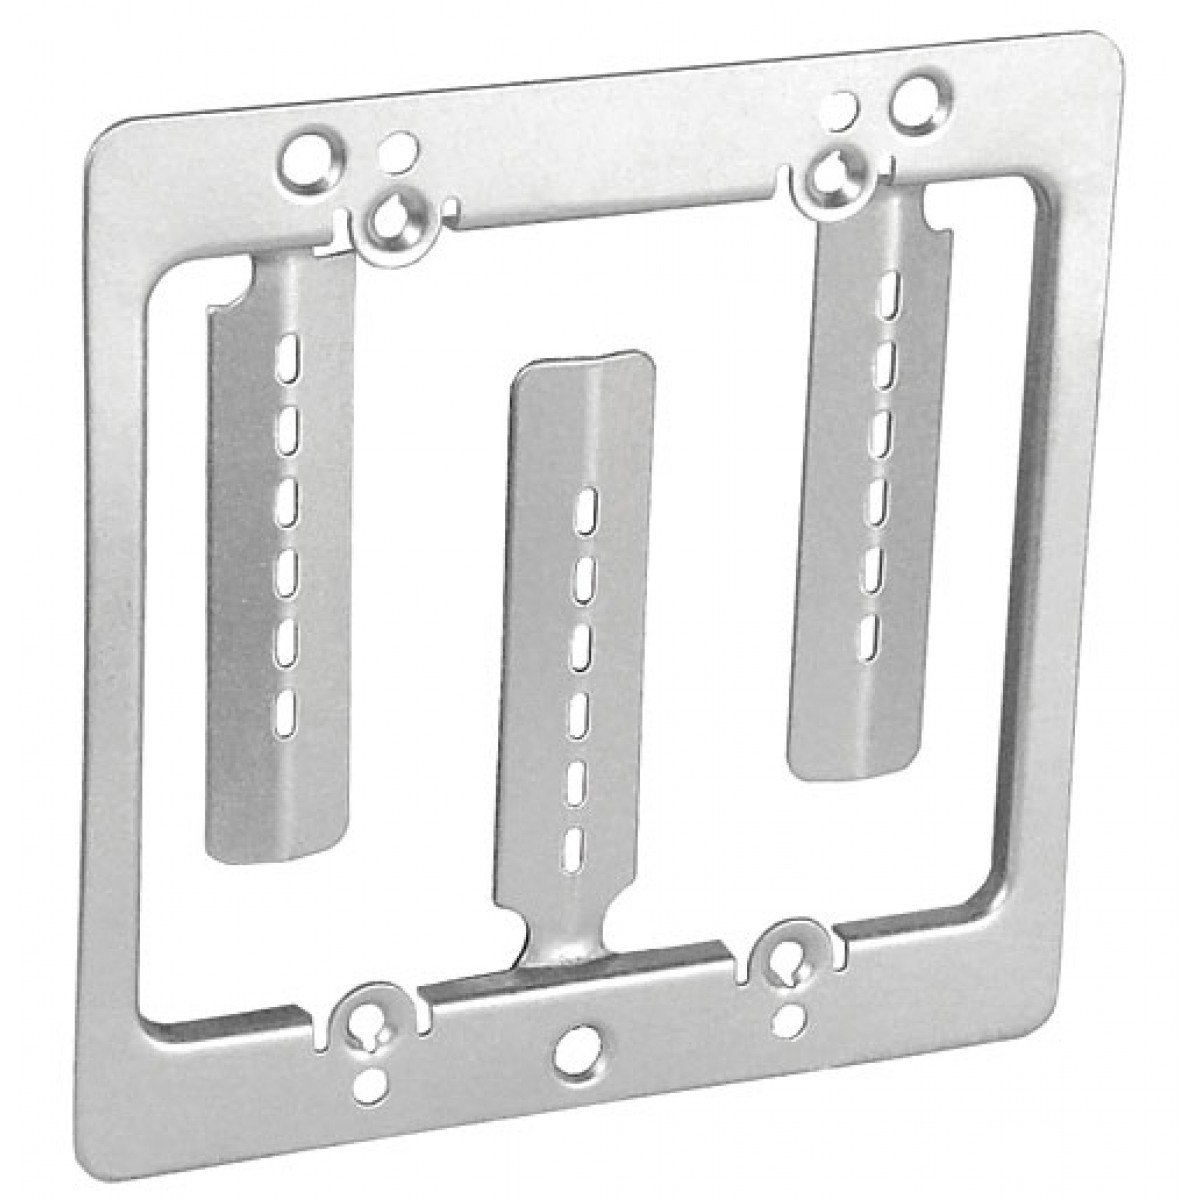 5 Pcs, Zinc Plated Steel Two Device Opening Mounting Bracket For 1/2 Or 5/8 In. Drywall, w/Mounting Screws to Mount Vertically Or Horizontally In New Construction